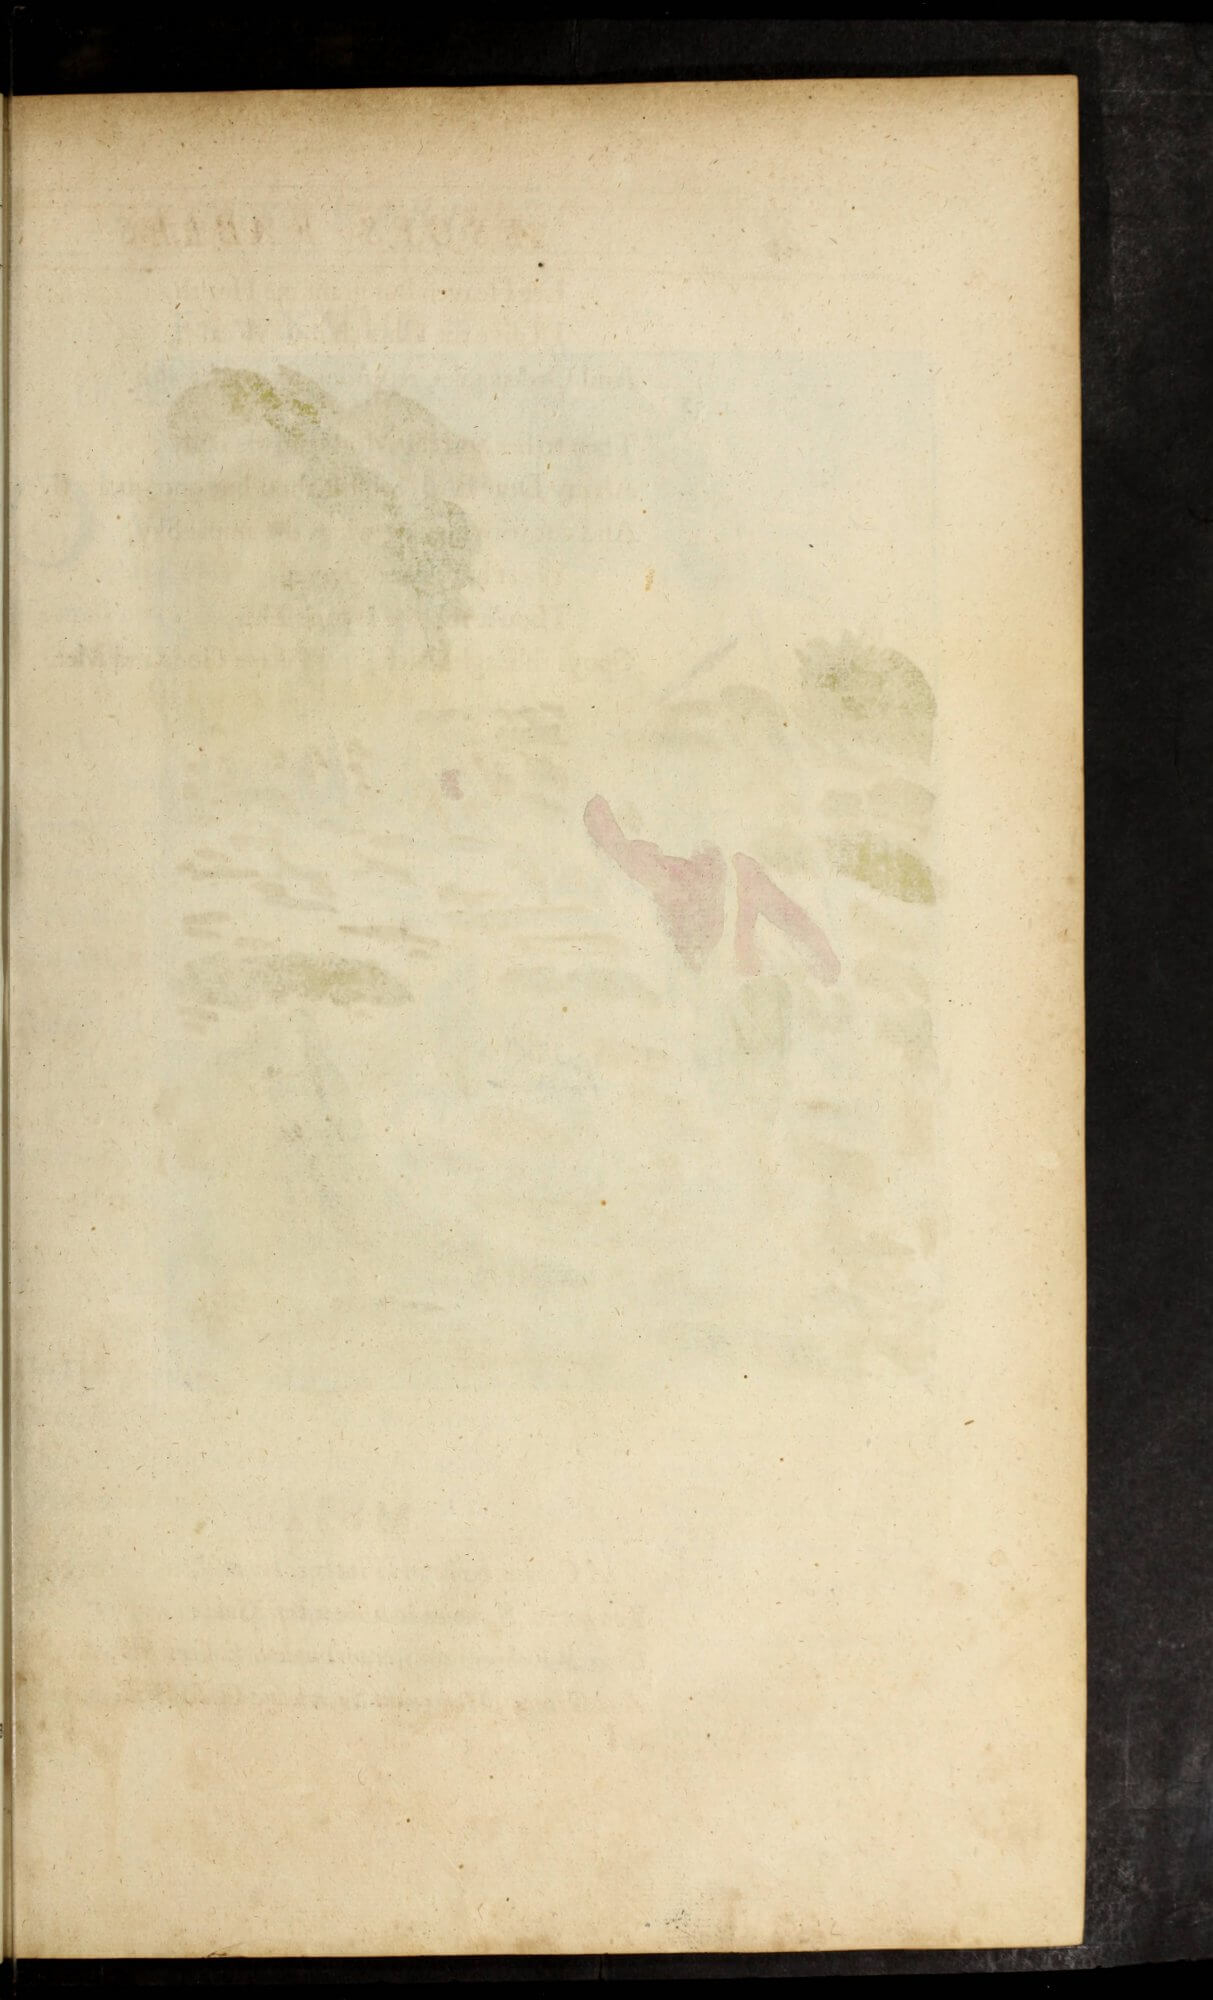 The blank verso of the leaf of a hand-colored intaglio print shows where some of the inks have bleed through.